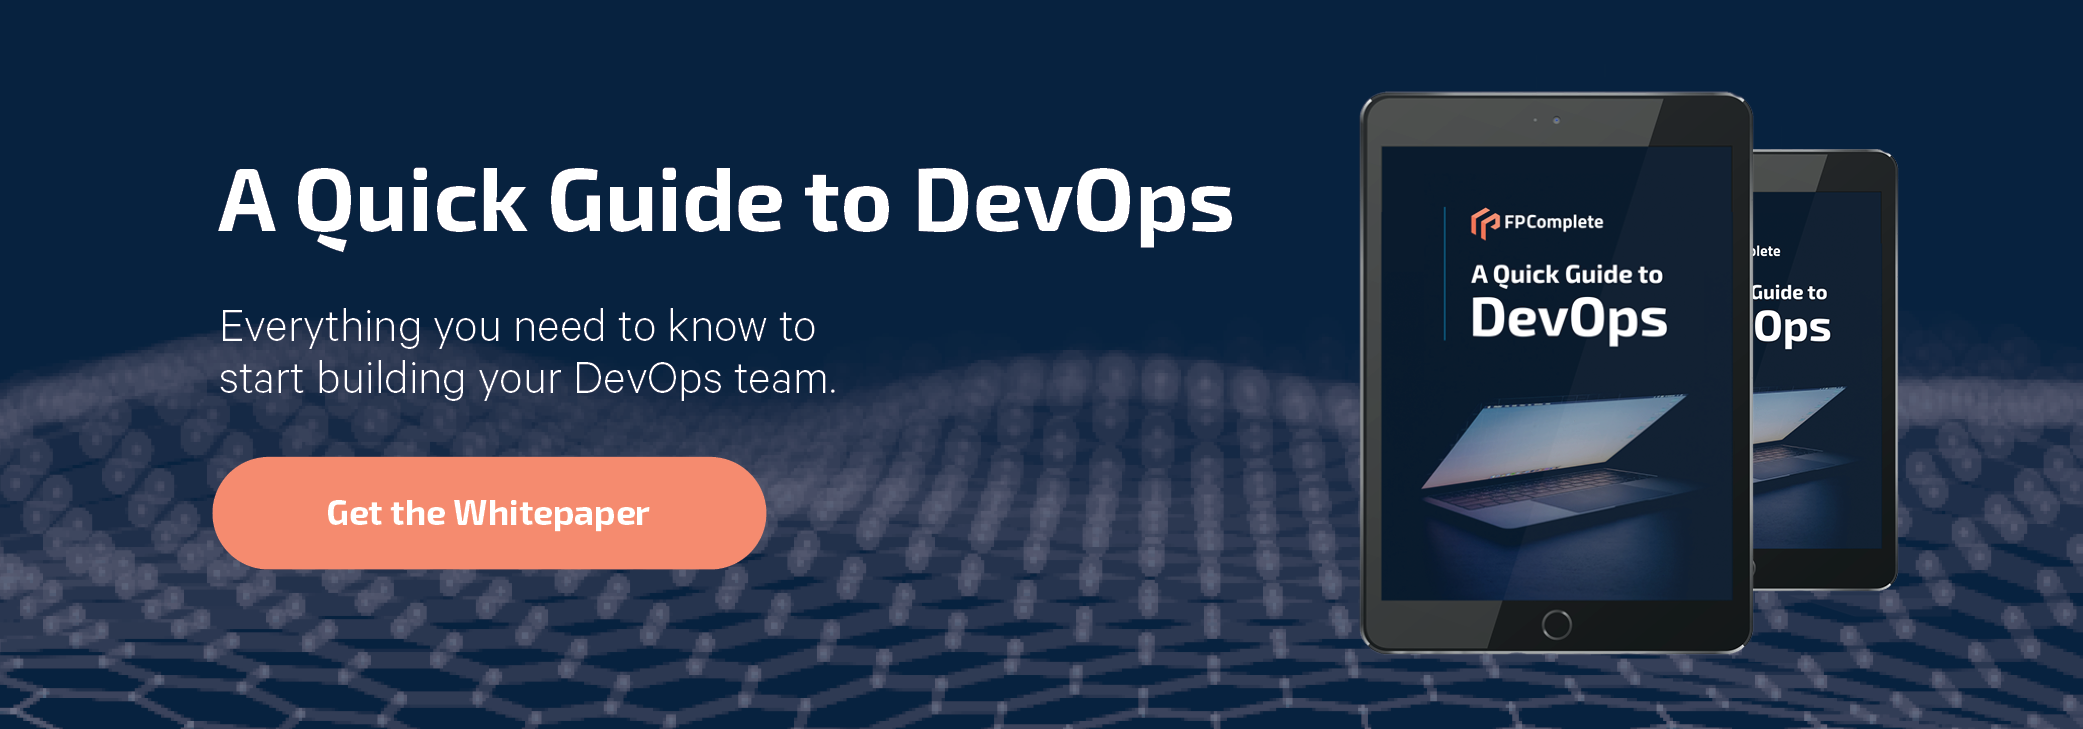 A Quick Guide to DevOps